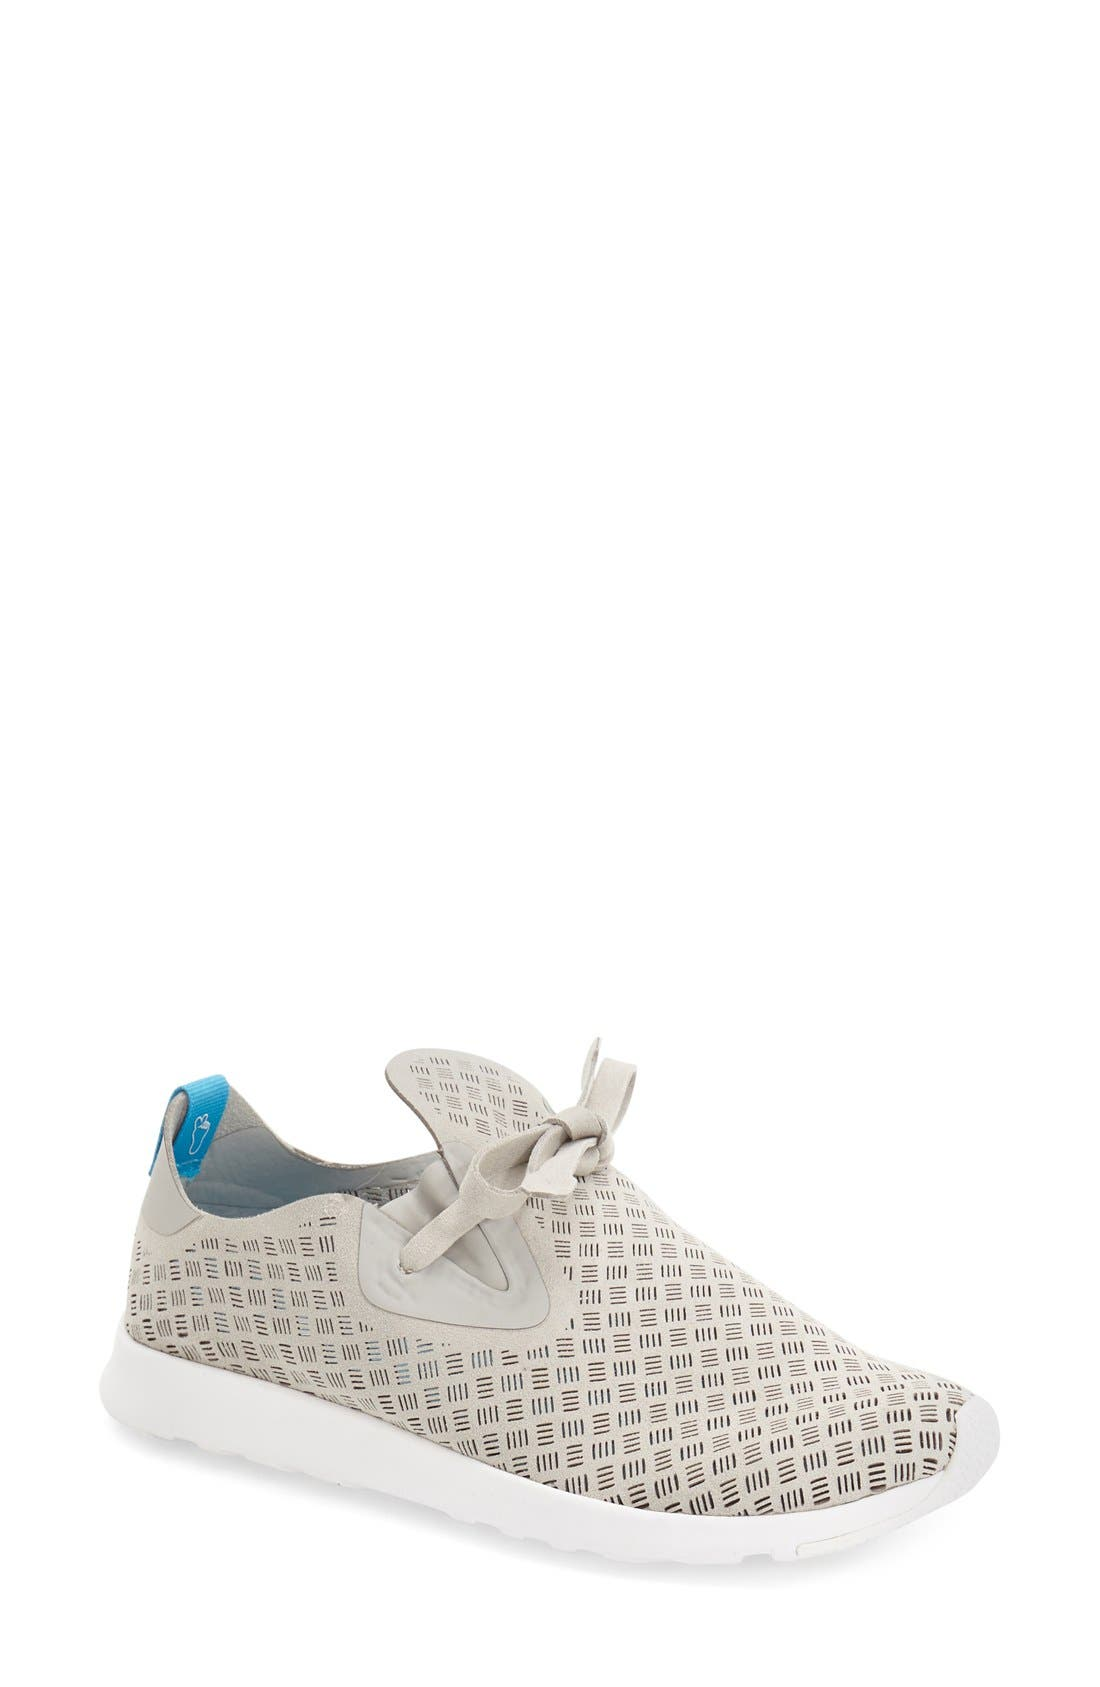 Alternate Image 1 Selected - Native Shoes 'Apollo Mox XL' Perforated Sneaker (Women)